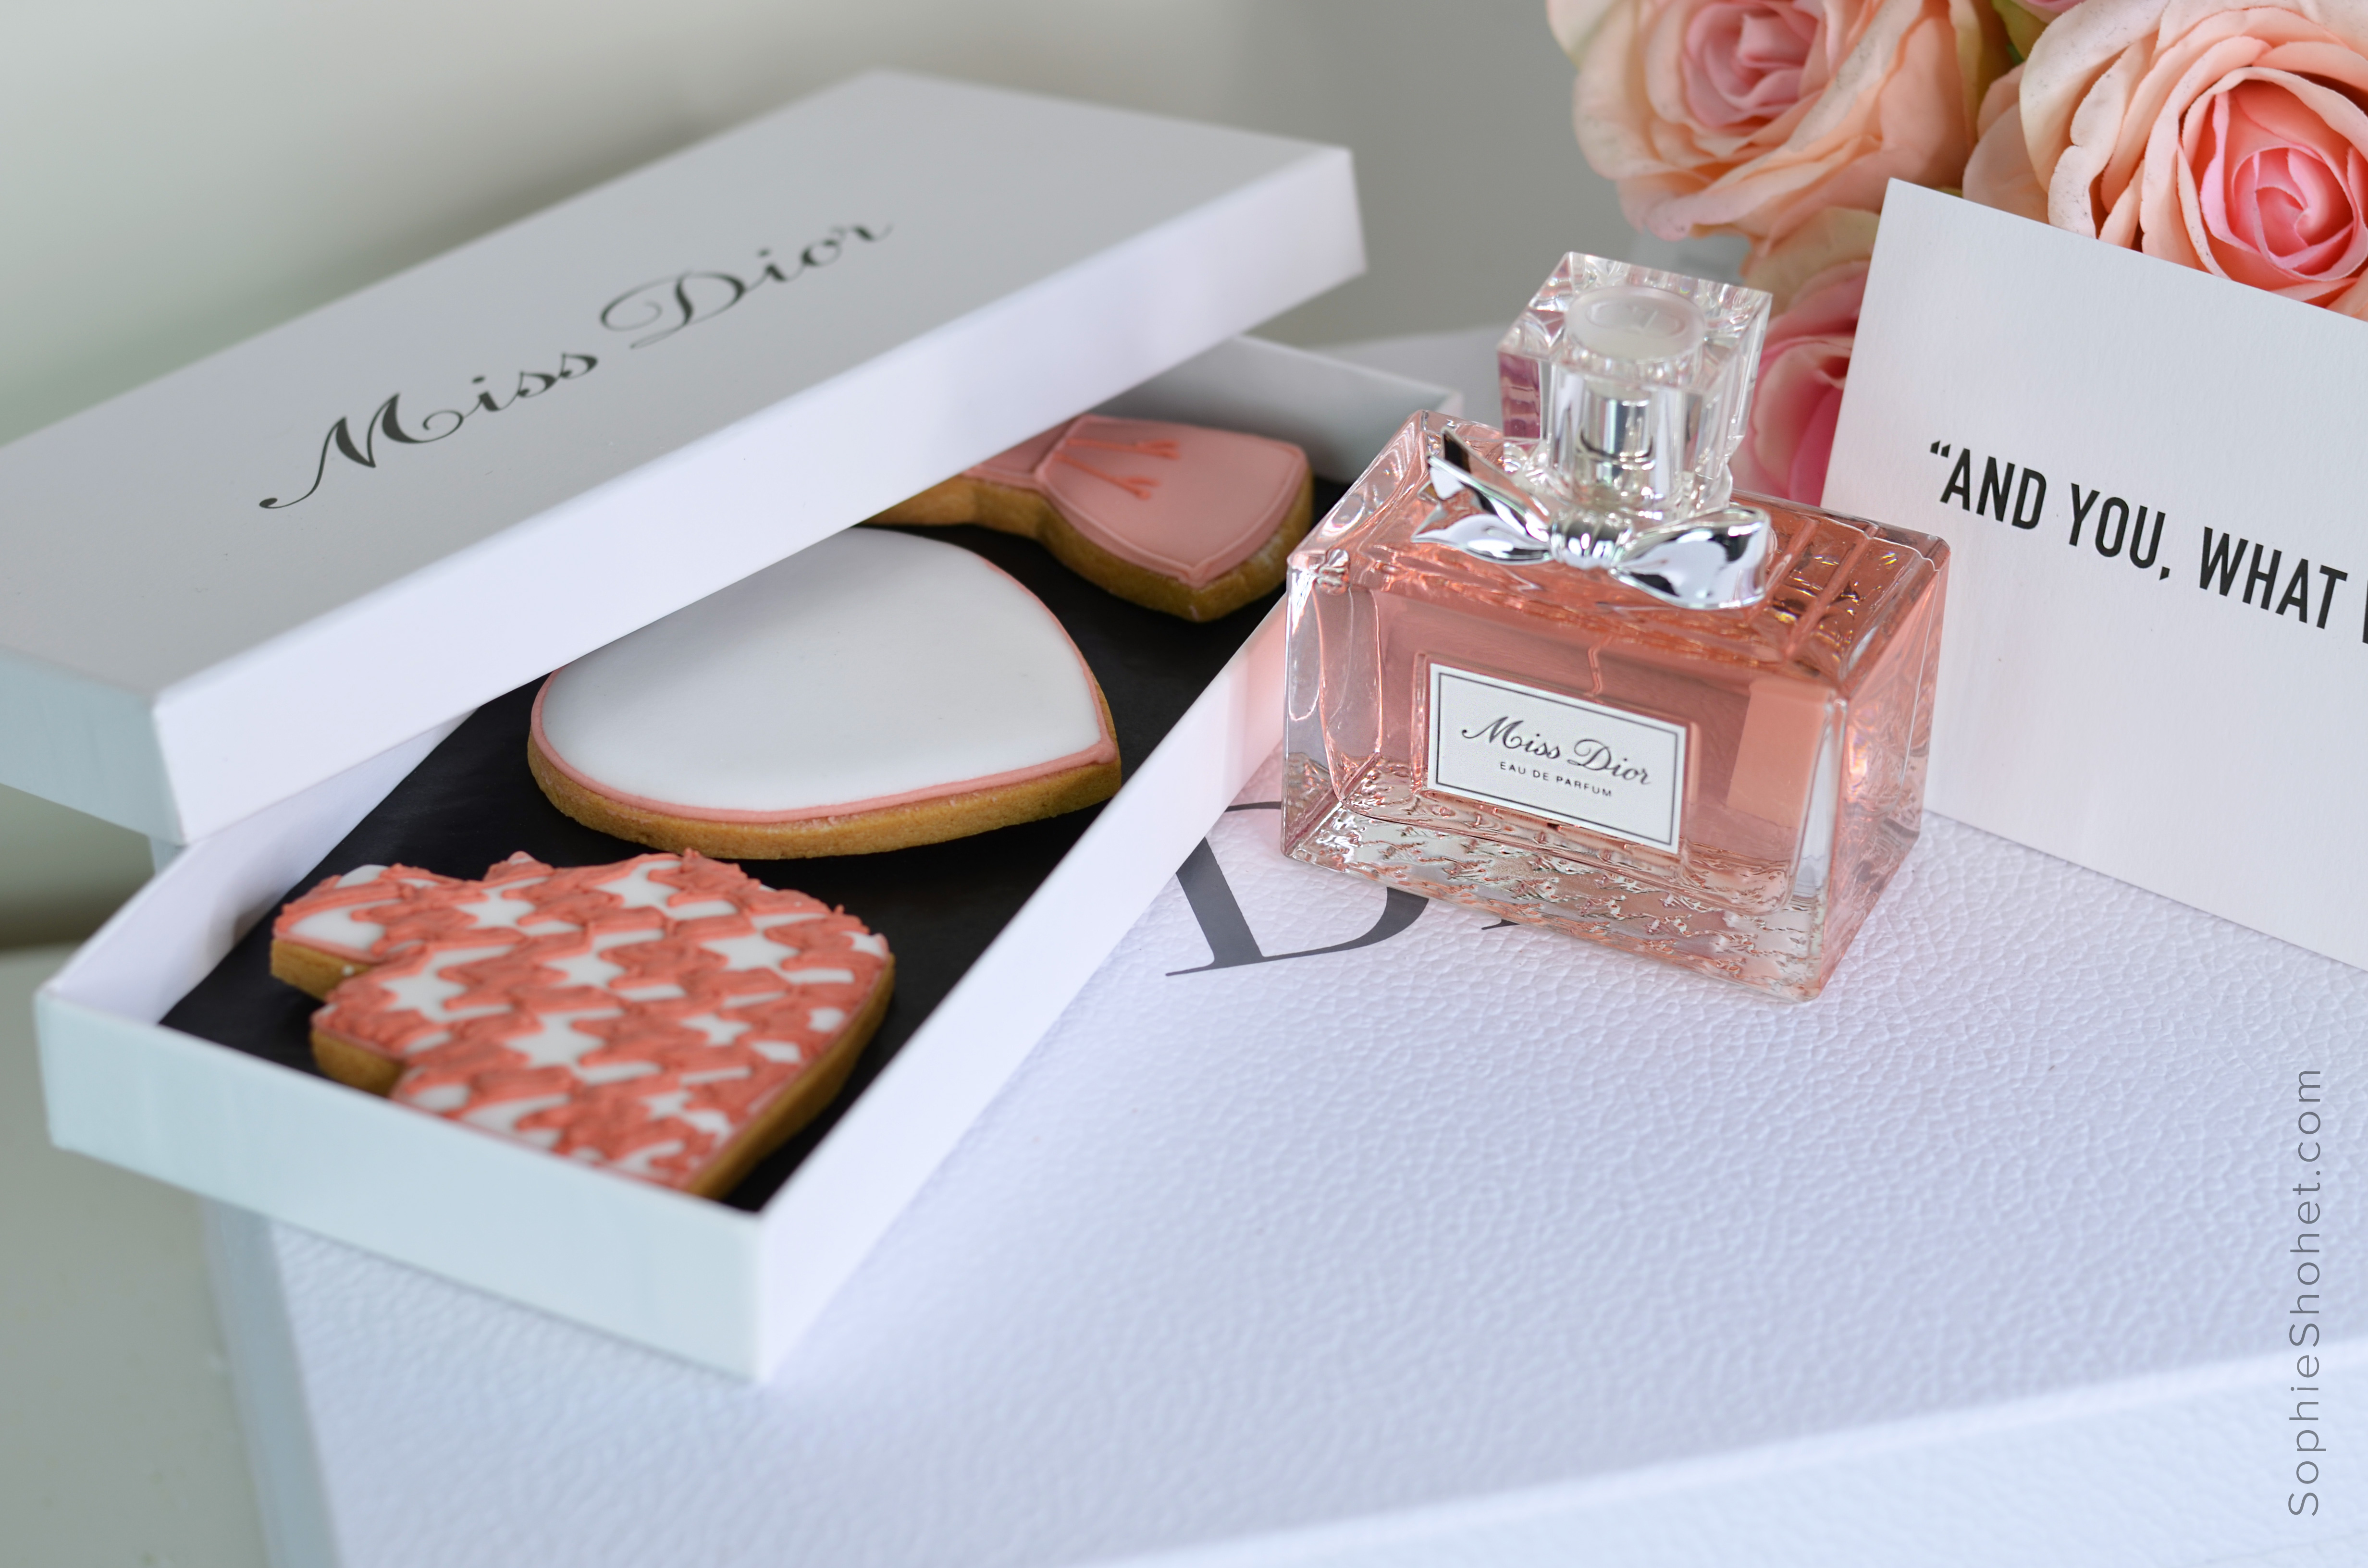 New Miss Dior perfume launch